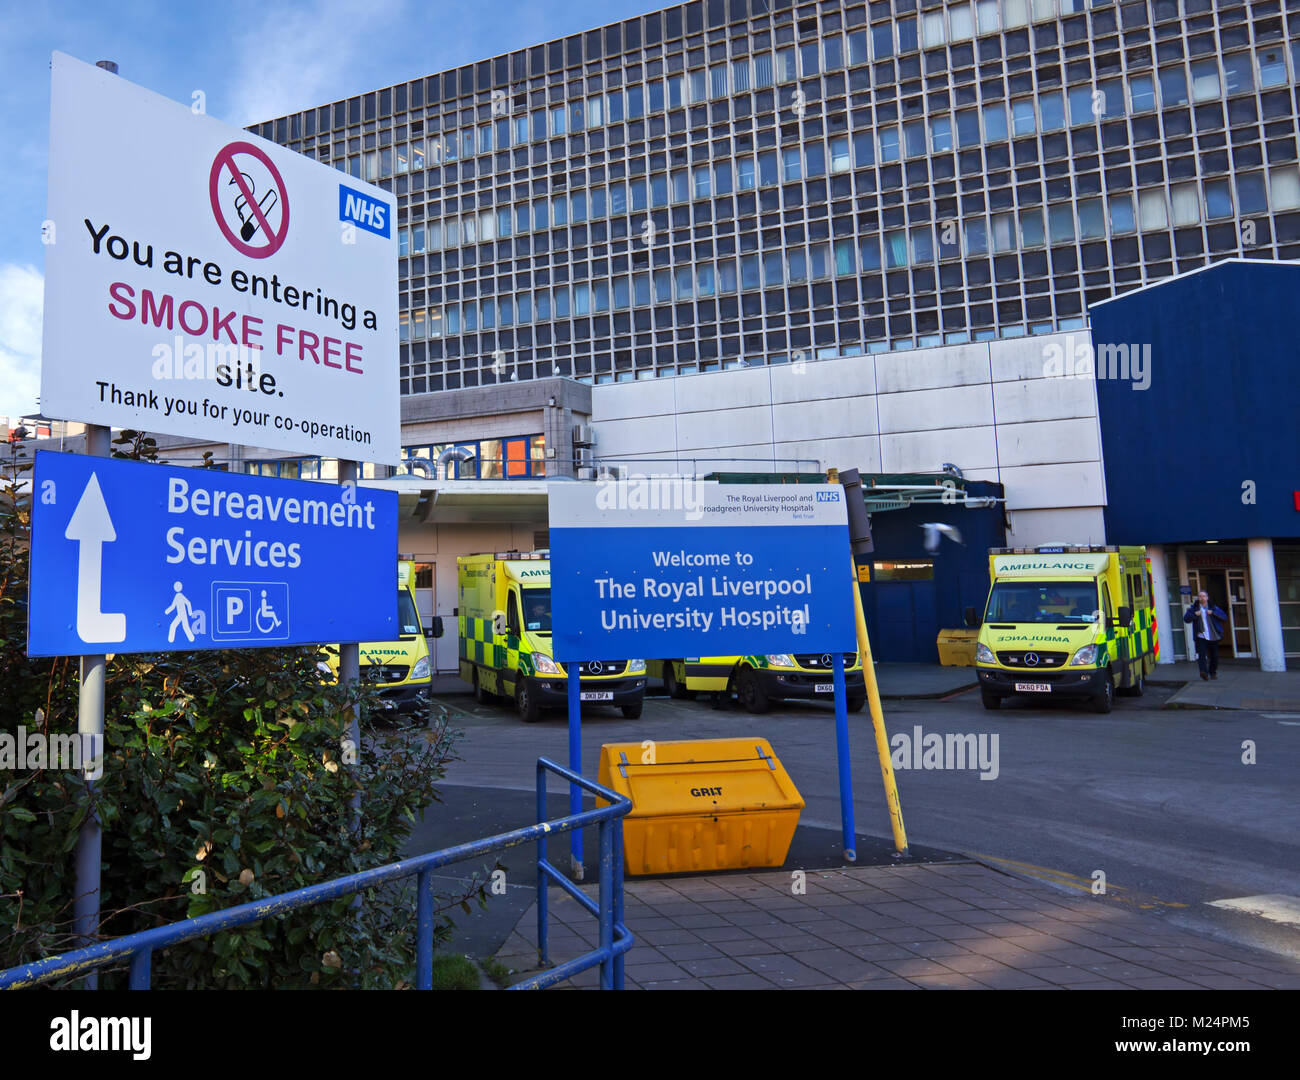 The Royal Liverpool University Hospital is a major teaching and research hospital located in the city of Liverpool, - Stock Image